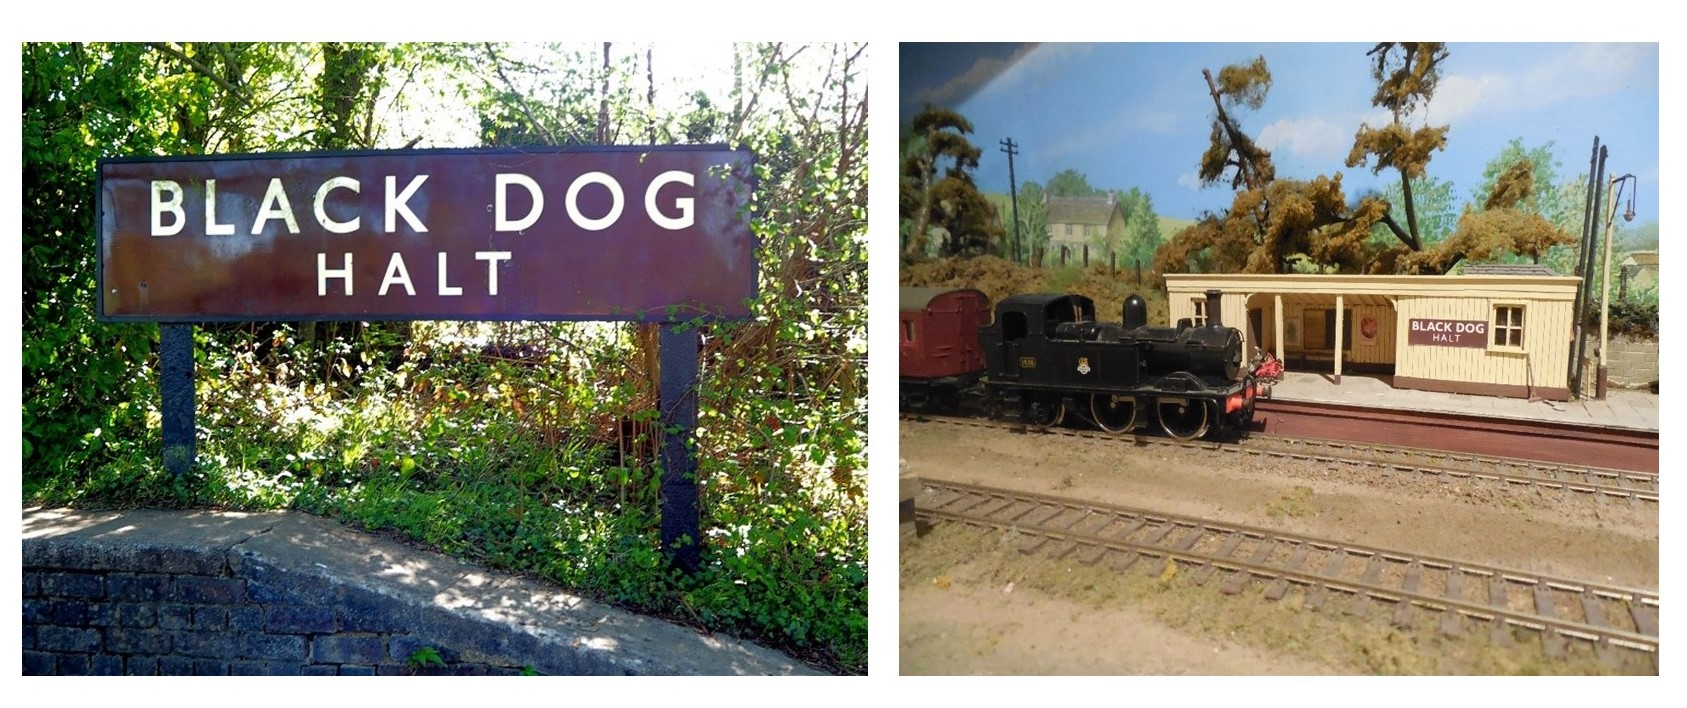 Two colour photographs showing the Black Dog Halt sign on the cycle tack and the model railway at chippenham museum